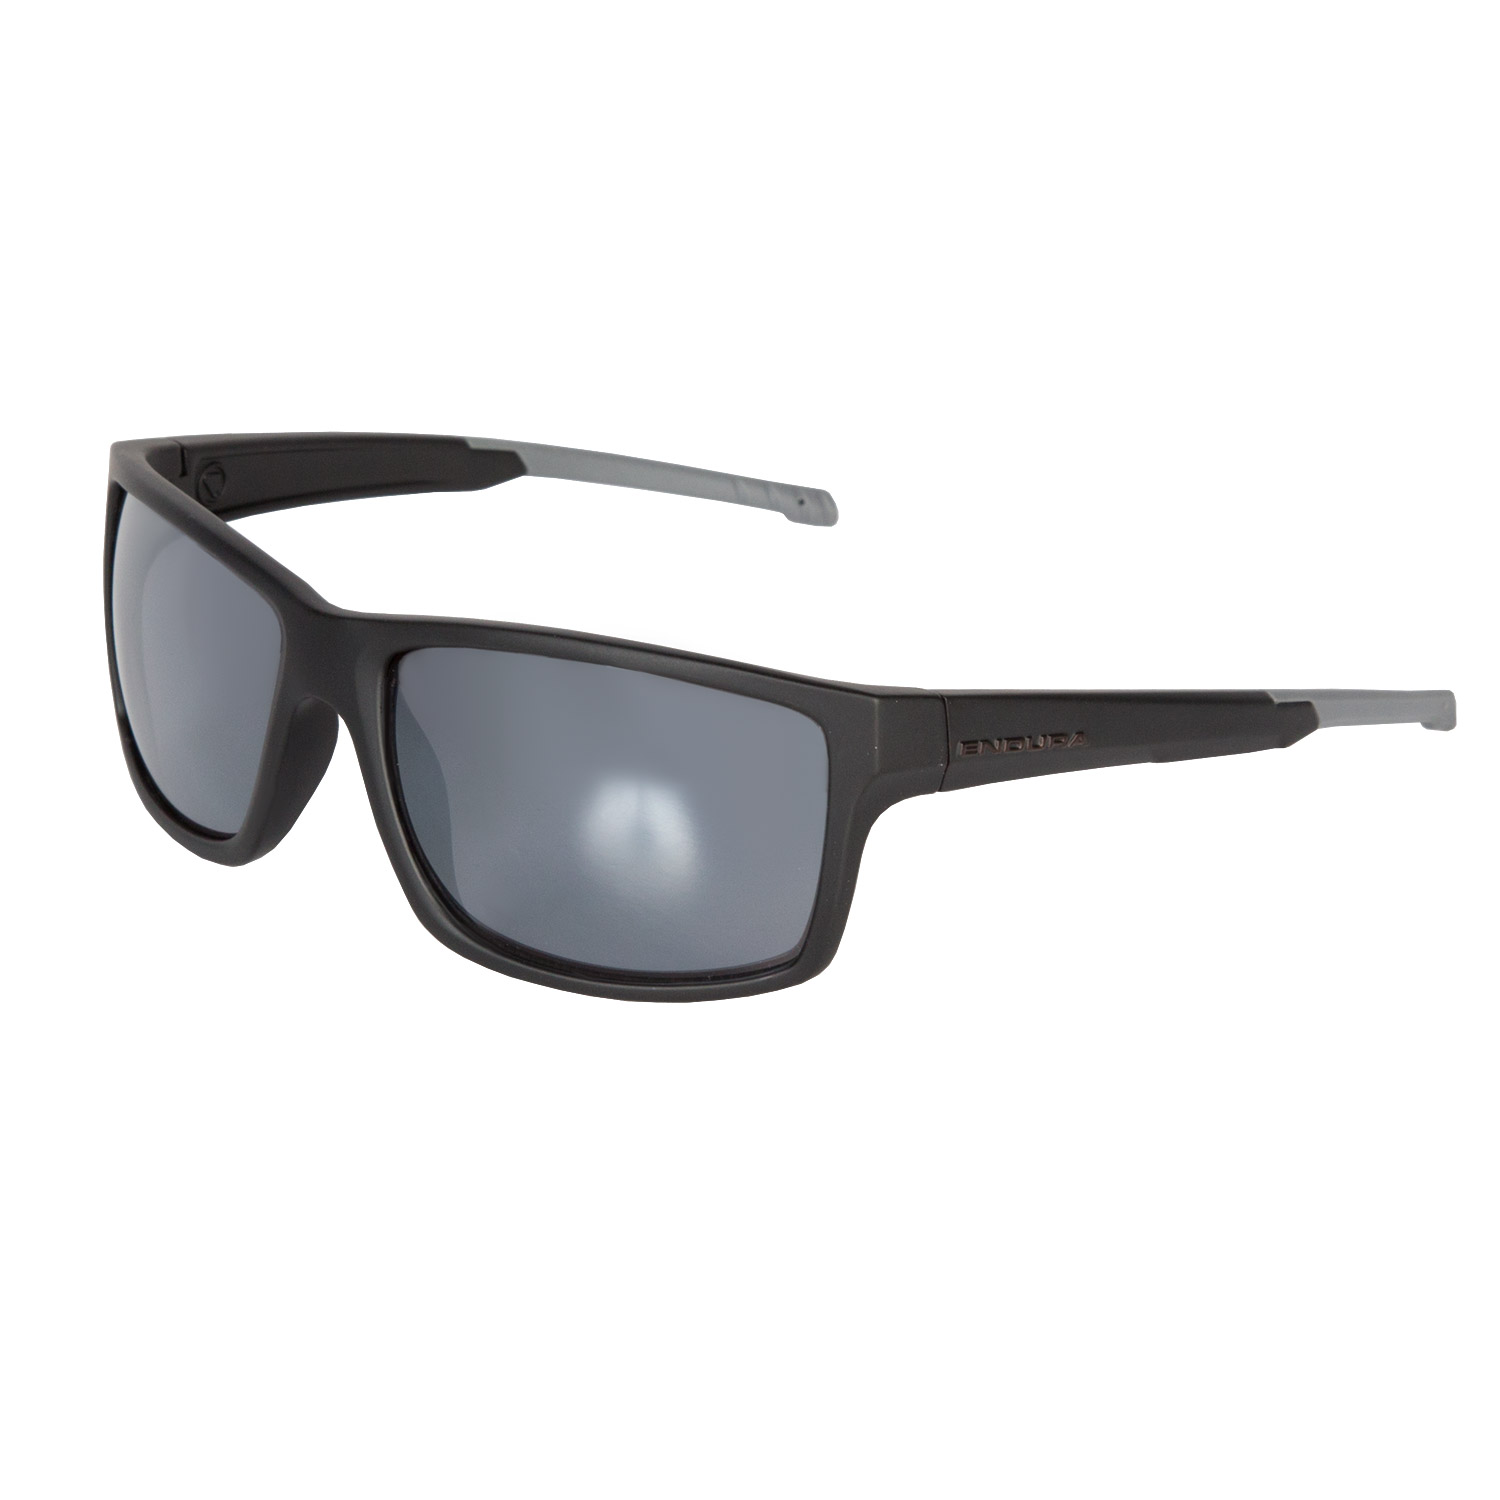 Hummvee Glasses Black